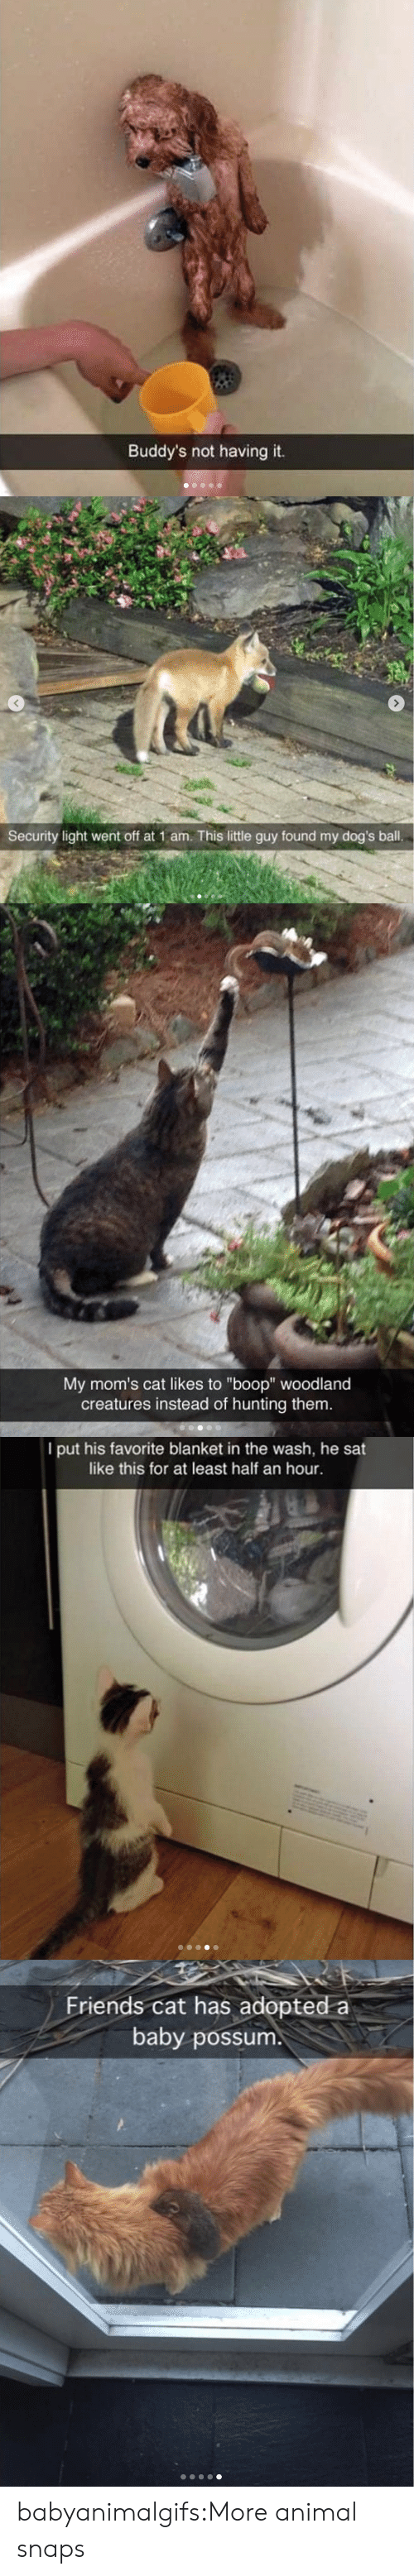 """half an hour: Buddy's not having it.   Security light went off at 1 am. This little guy found my dog's ball.   My mom's cat likes to """"boop"""" woodland  creatures instead of hunting them.   I put his favorite blanket in the wash, he sat  like this for at least half an hour.   Friends cat has adopted a  baby possum babyanimalgifs:More animal snaps"""